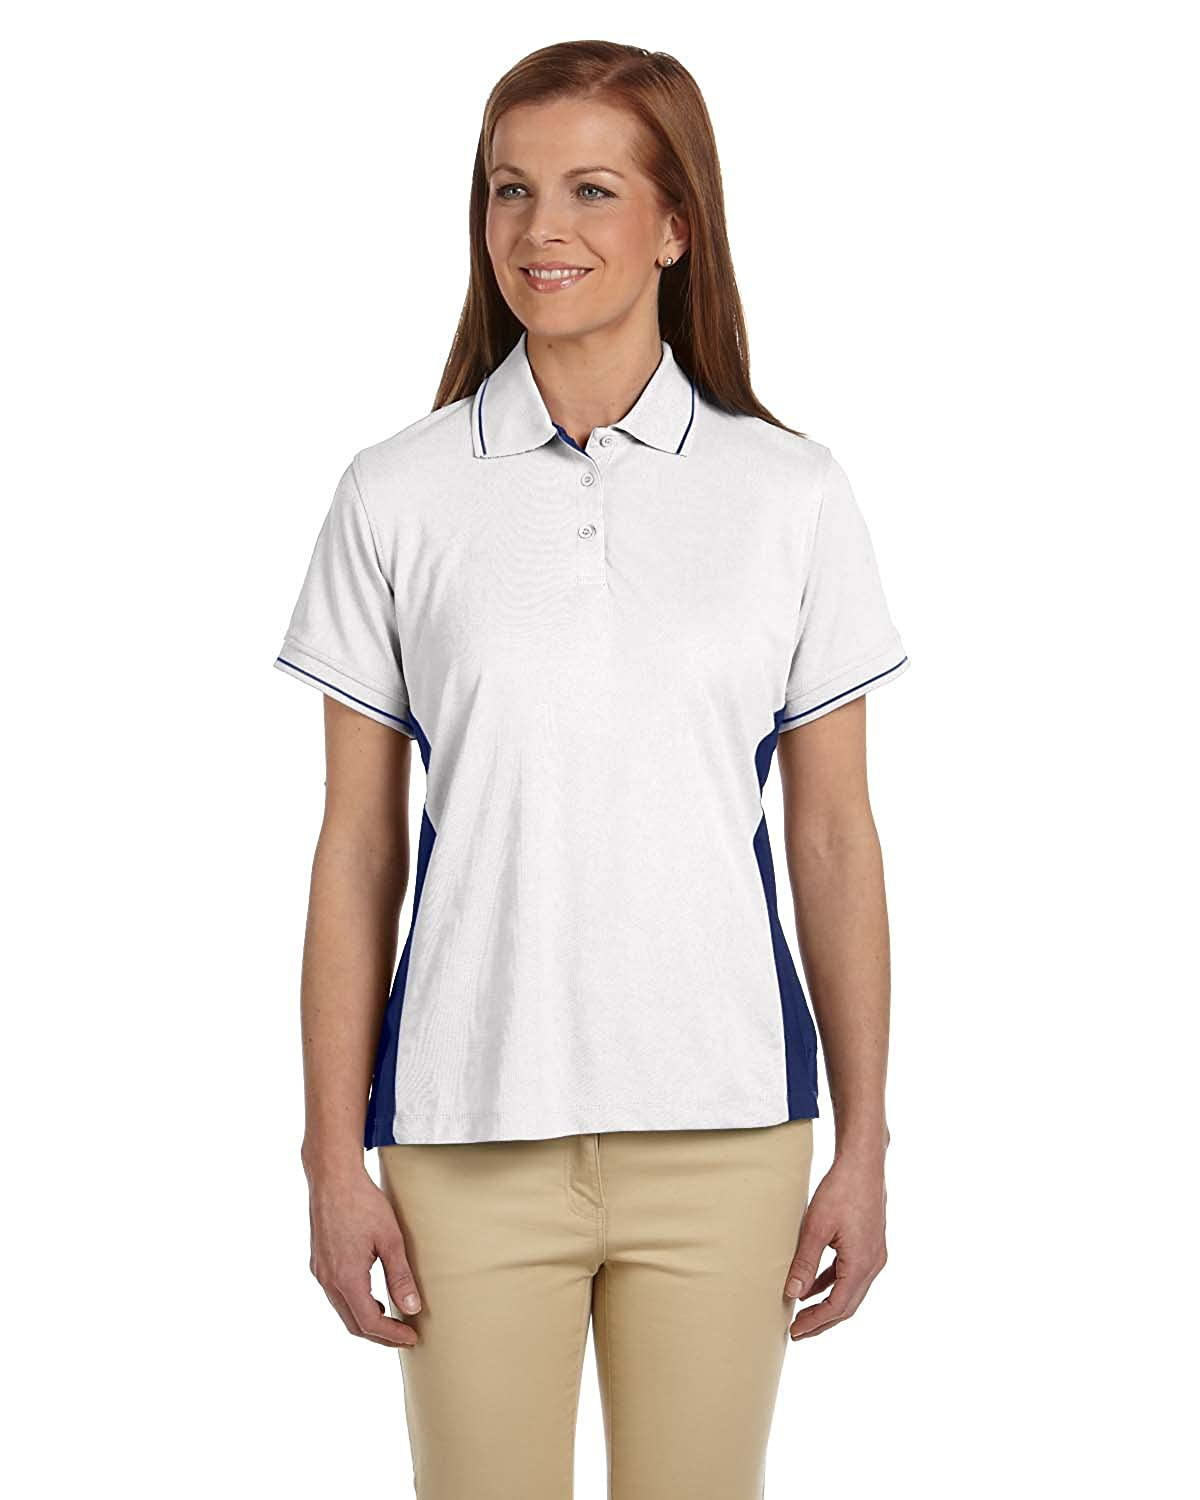 Devon & Jones Women's Dri-Fast Advantage Piqué Polo DG380W